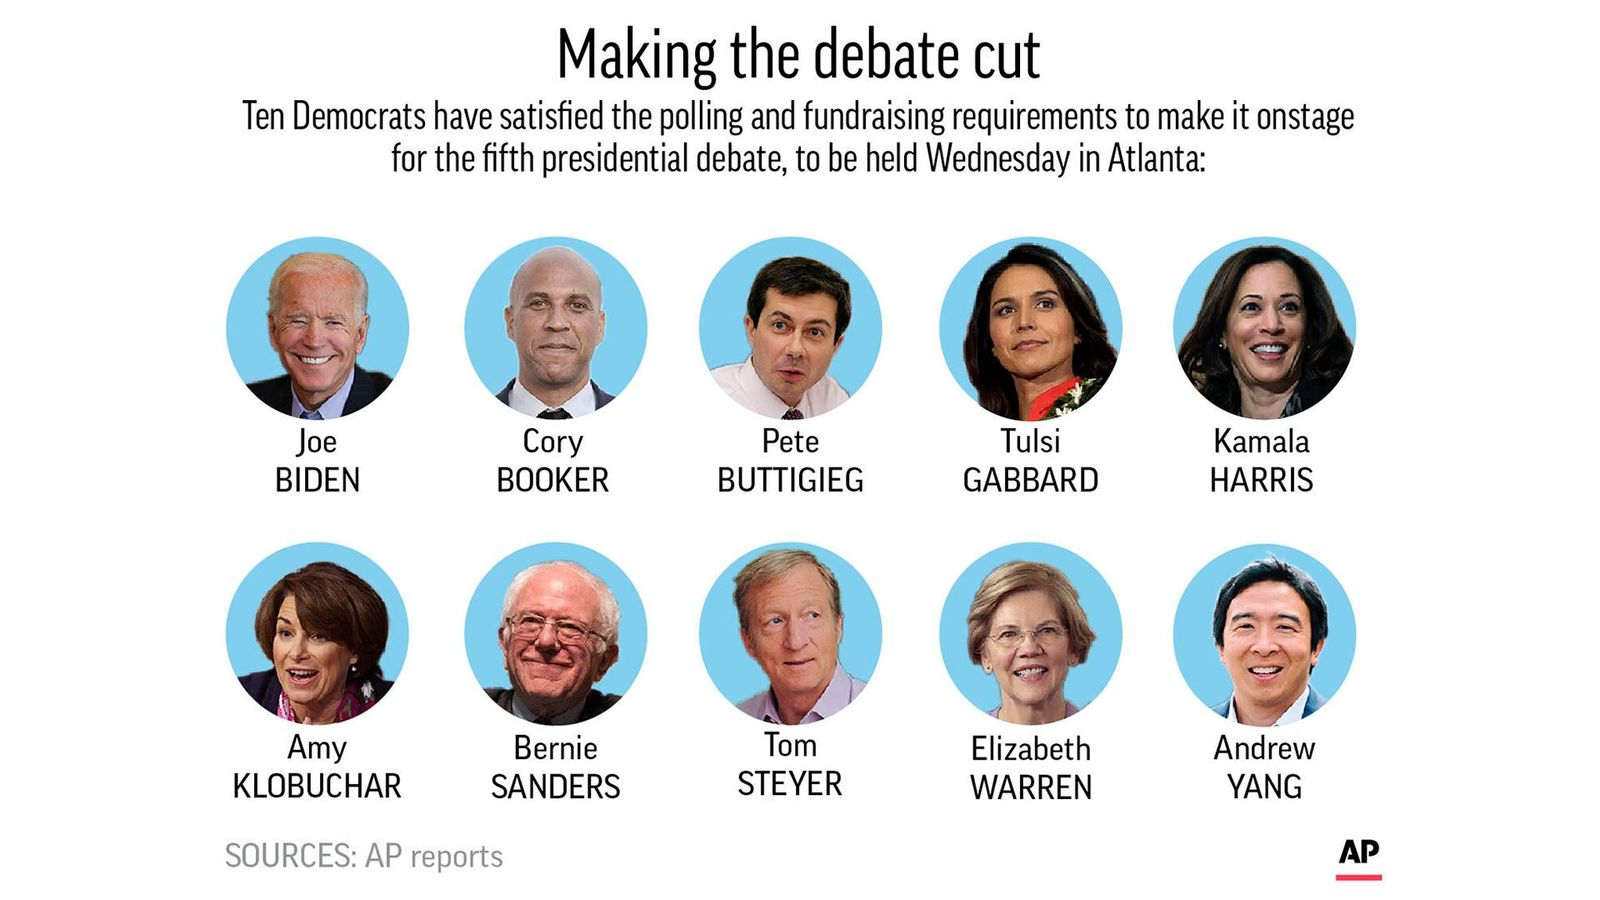 Democratic presidential candidates chosen to participate in fifth debate. (AP graphic)